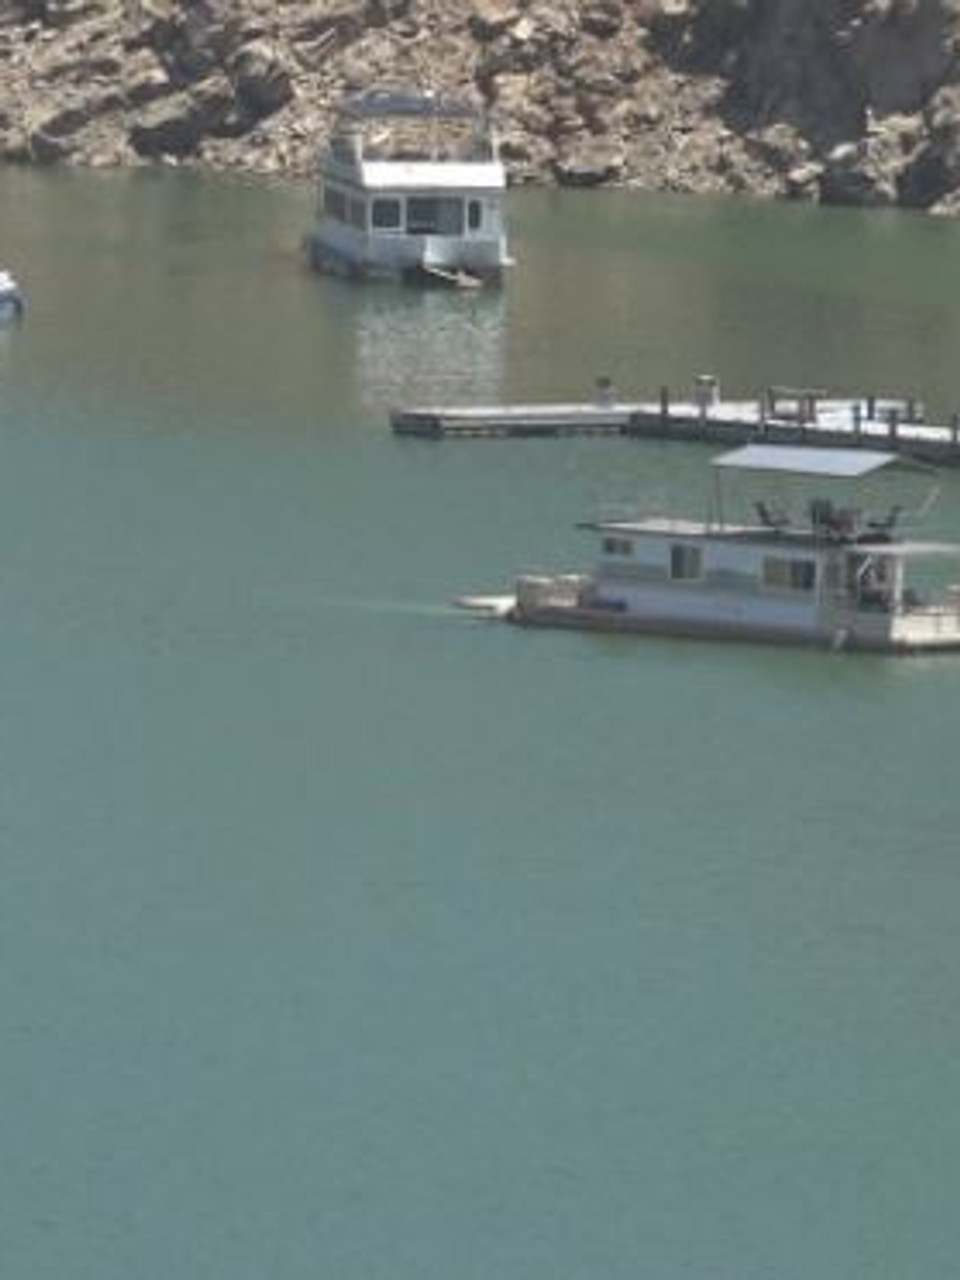 Lake Oroville Already Busy On Day 1 Of July 4th Weekend Boat Rentals Go Fast Krcr